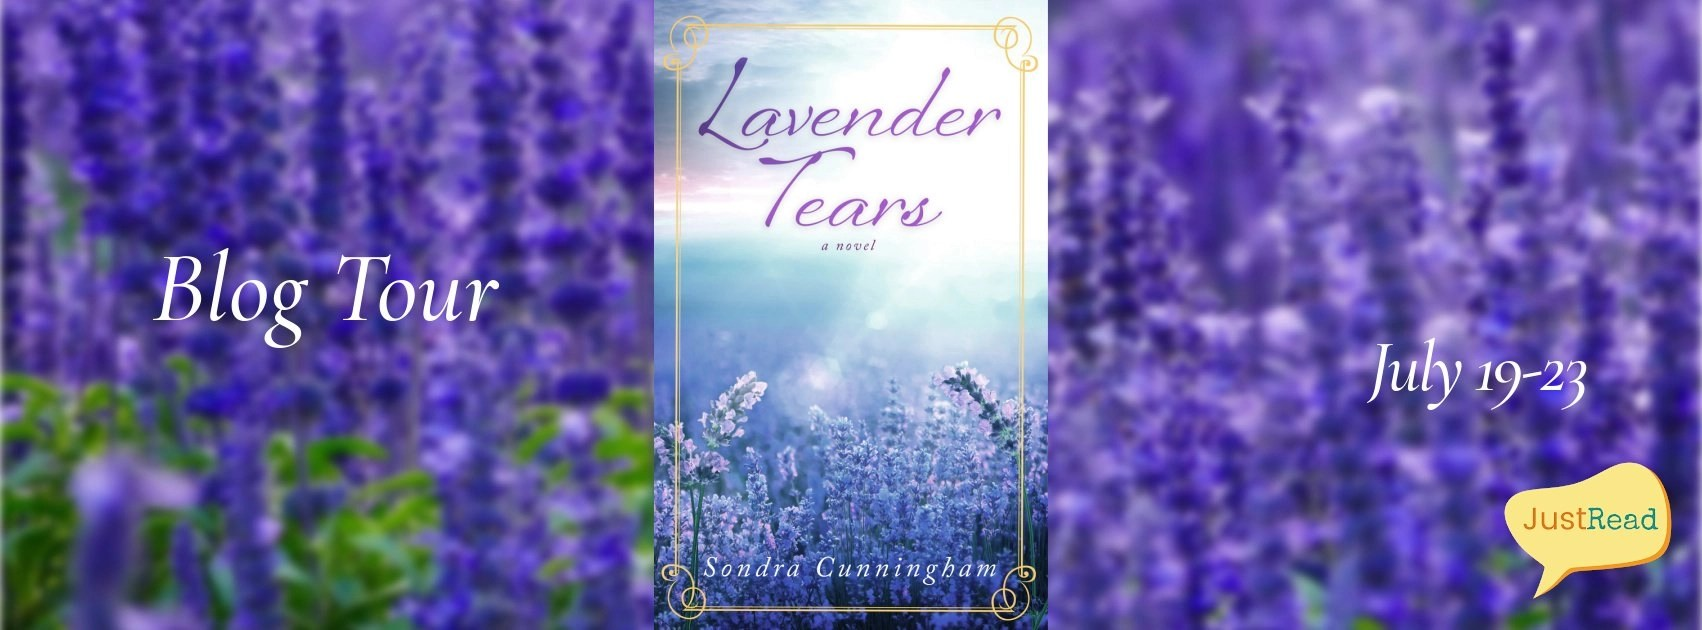 Welcome to the Lavender Tears Blog Tour & Giveaway!